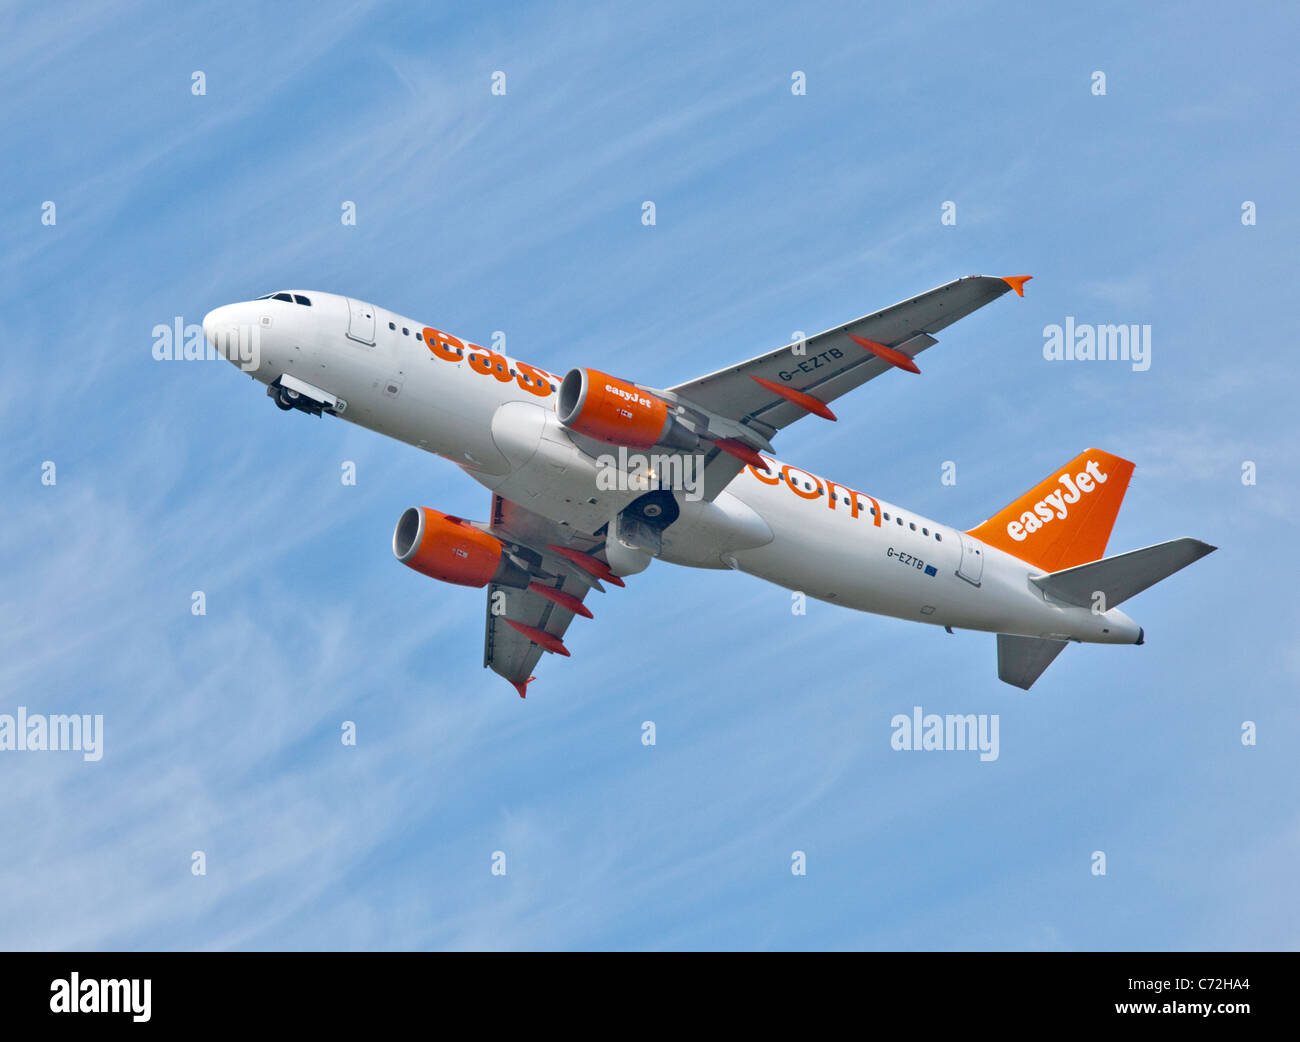 EasyJet Airbus A320, Gatwick Airport, West Sussex, England - Stock Image